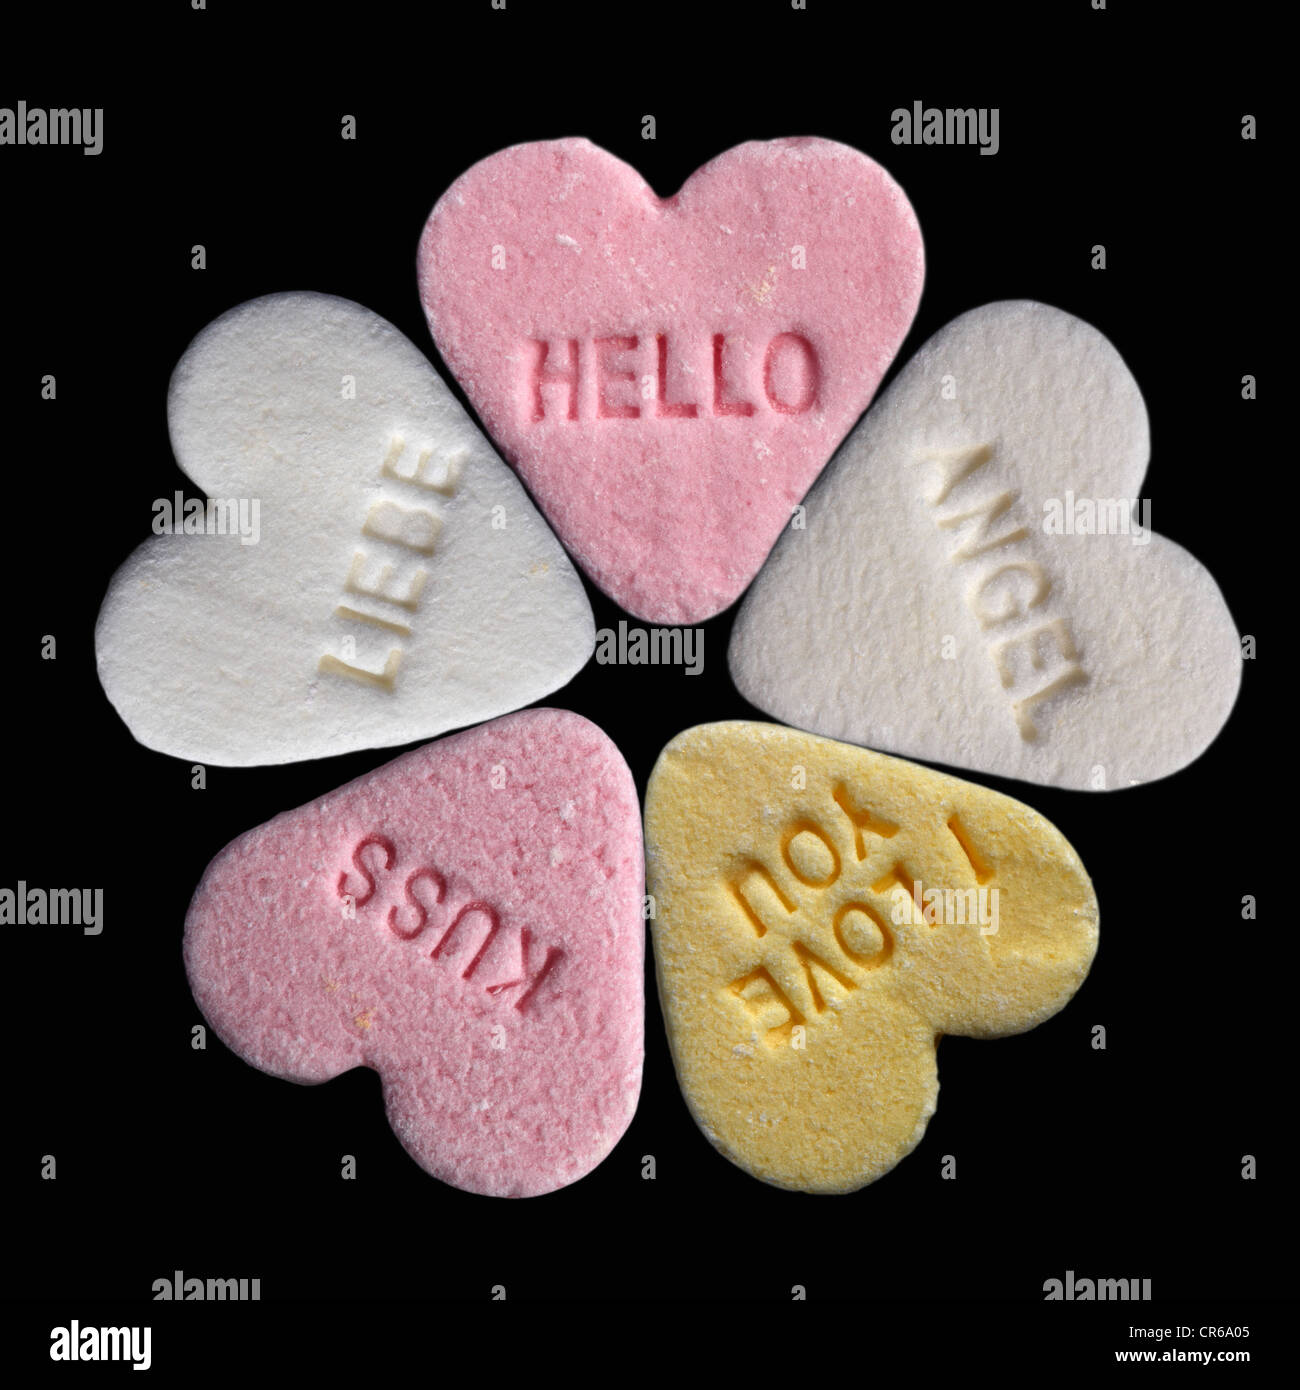 Heart candies with text on black background - Stock Image